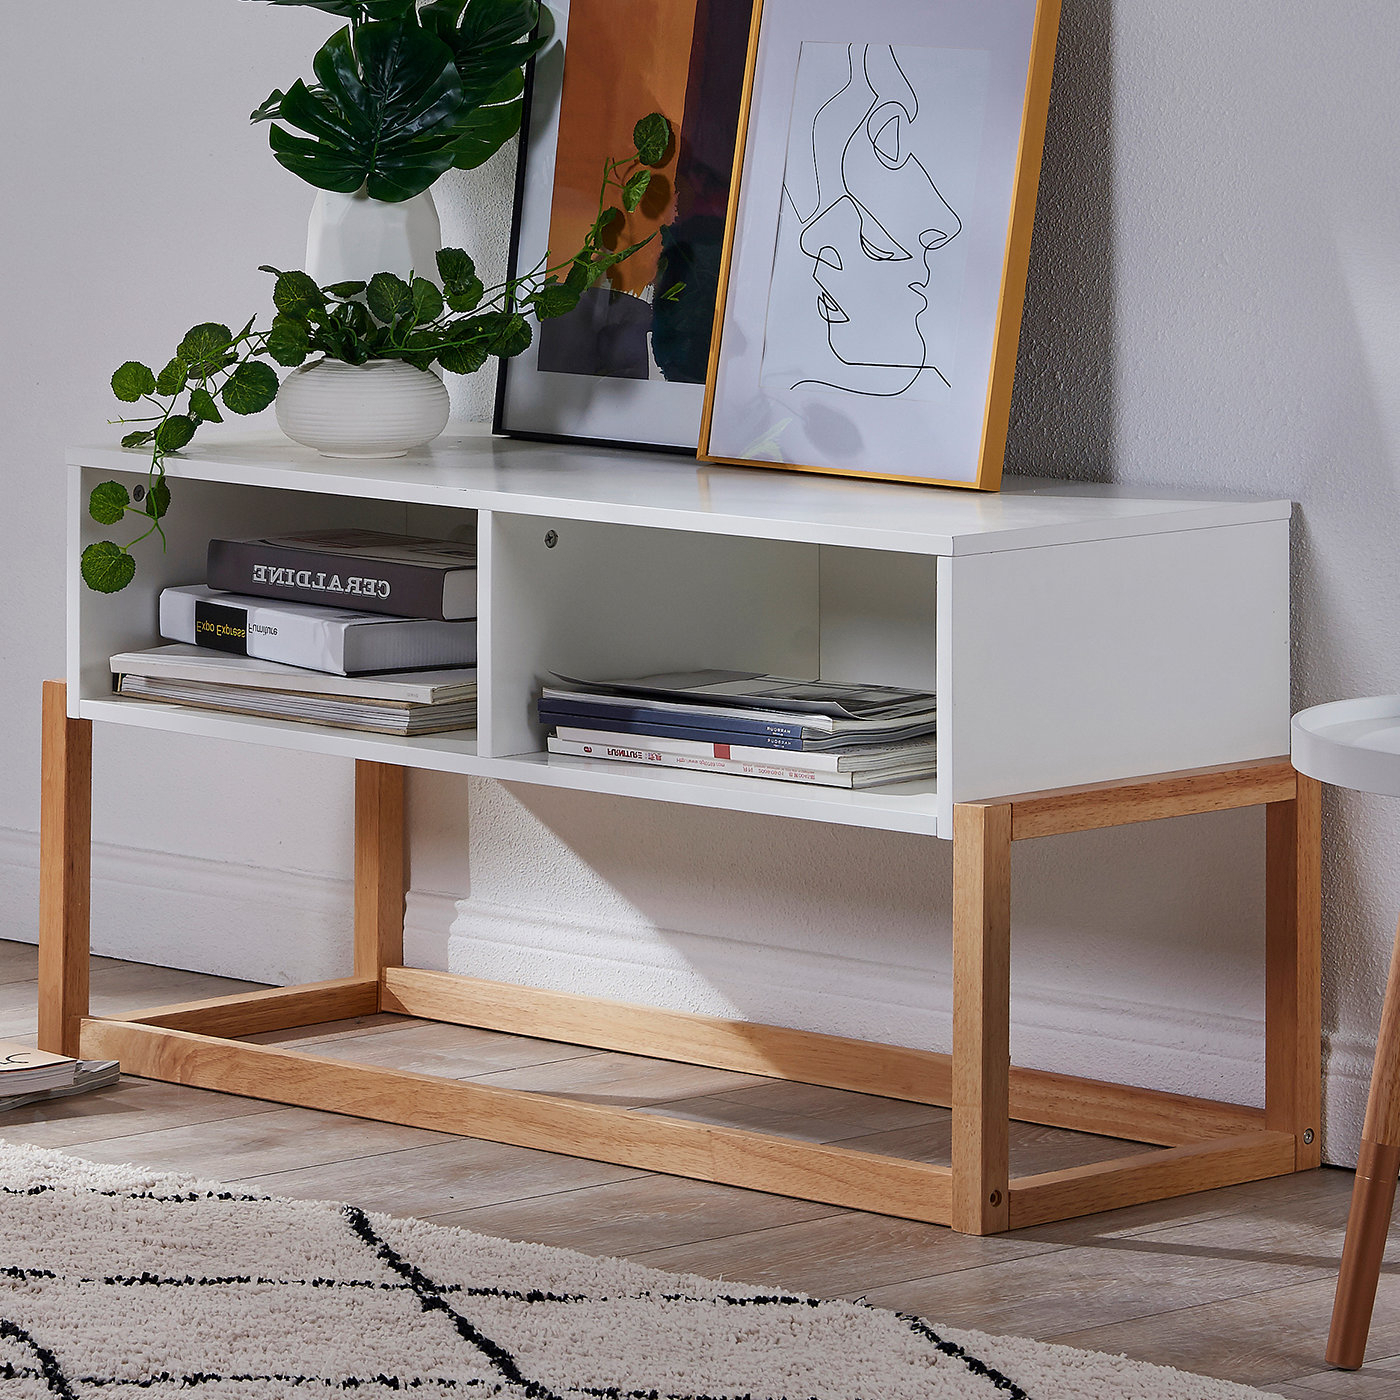 Stylish Tv Stands Within Most Current Versanora Creativo Stylish Tv Stand (View 15 of 20)